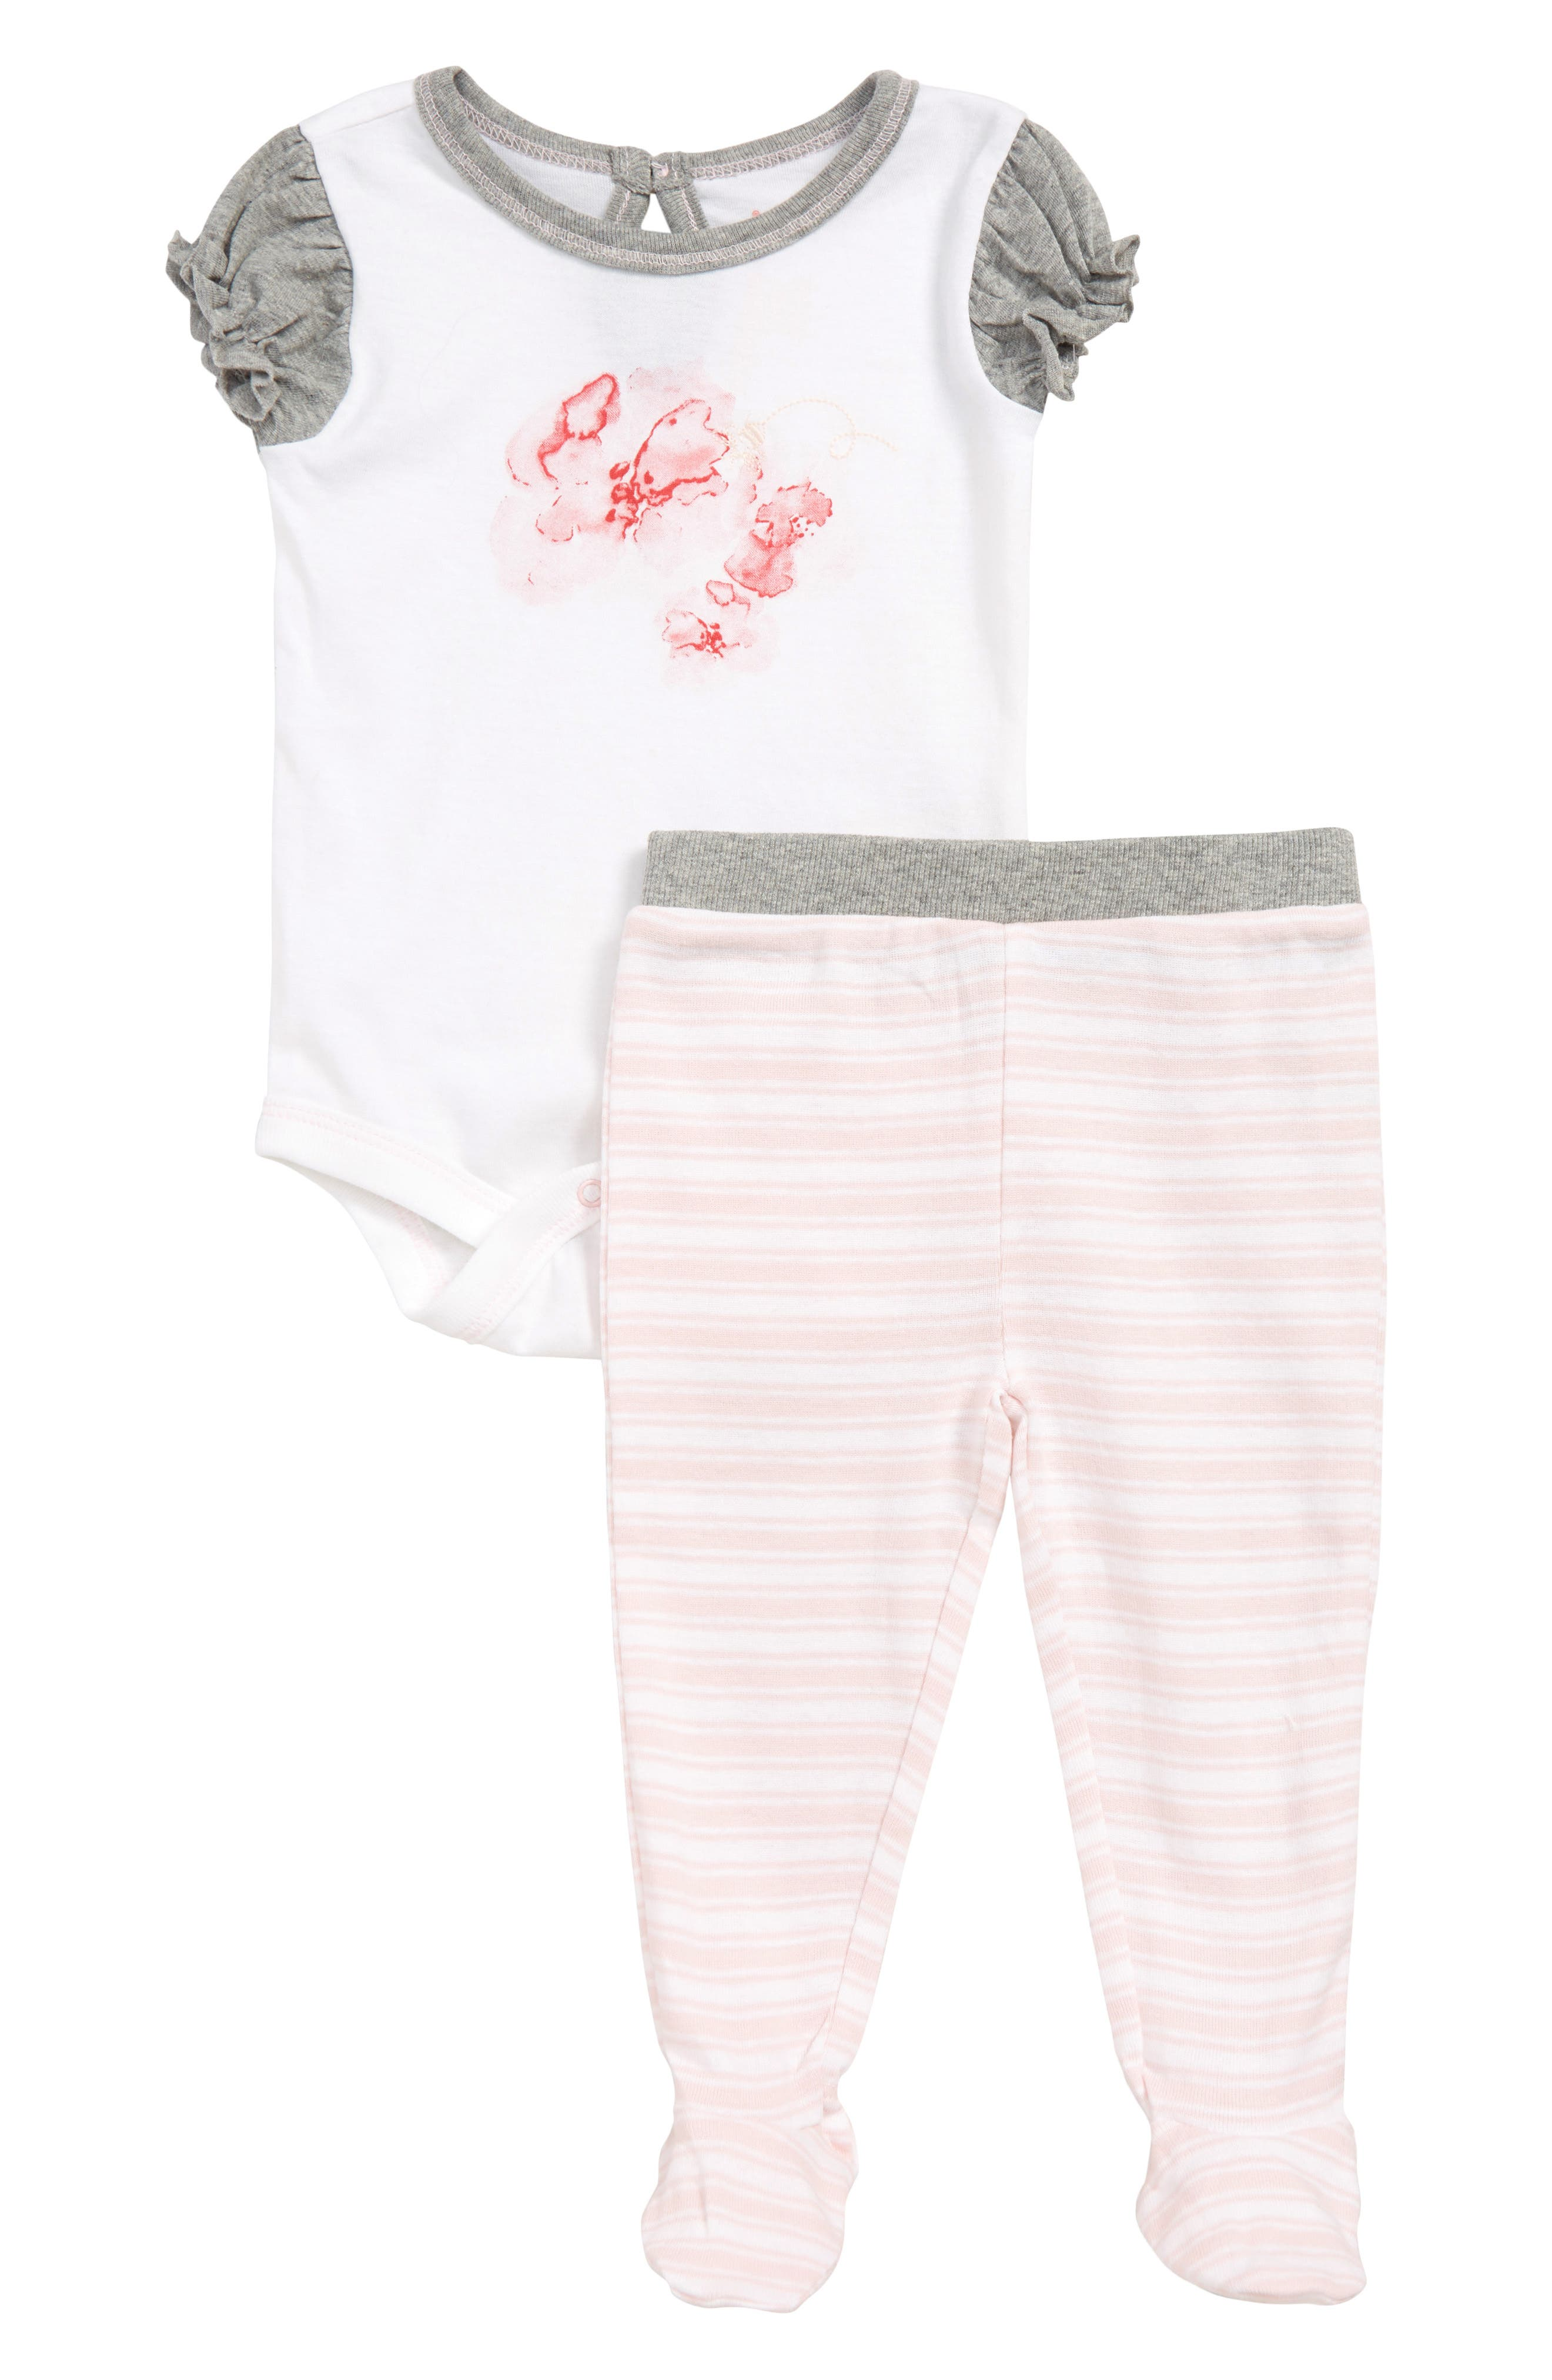 BURT'S BEES BABY Butterfly Escape Organic Cotton Bodysuit & Footed Leggings Set, Main, color, BLOSSOM